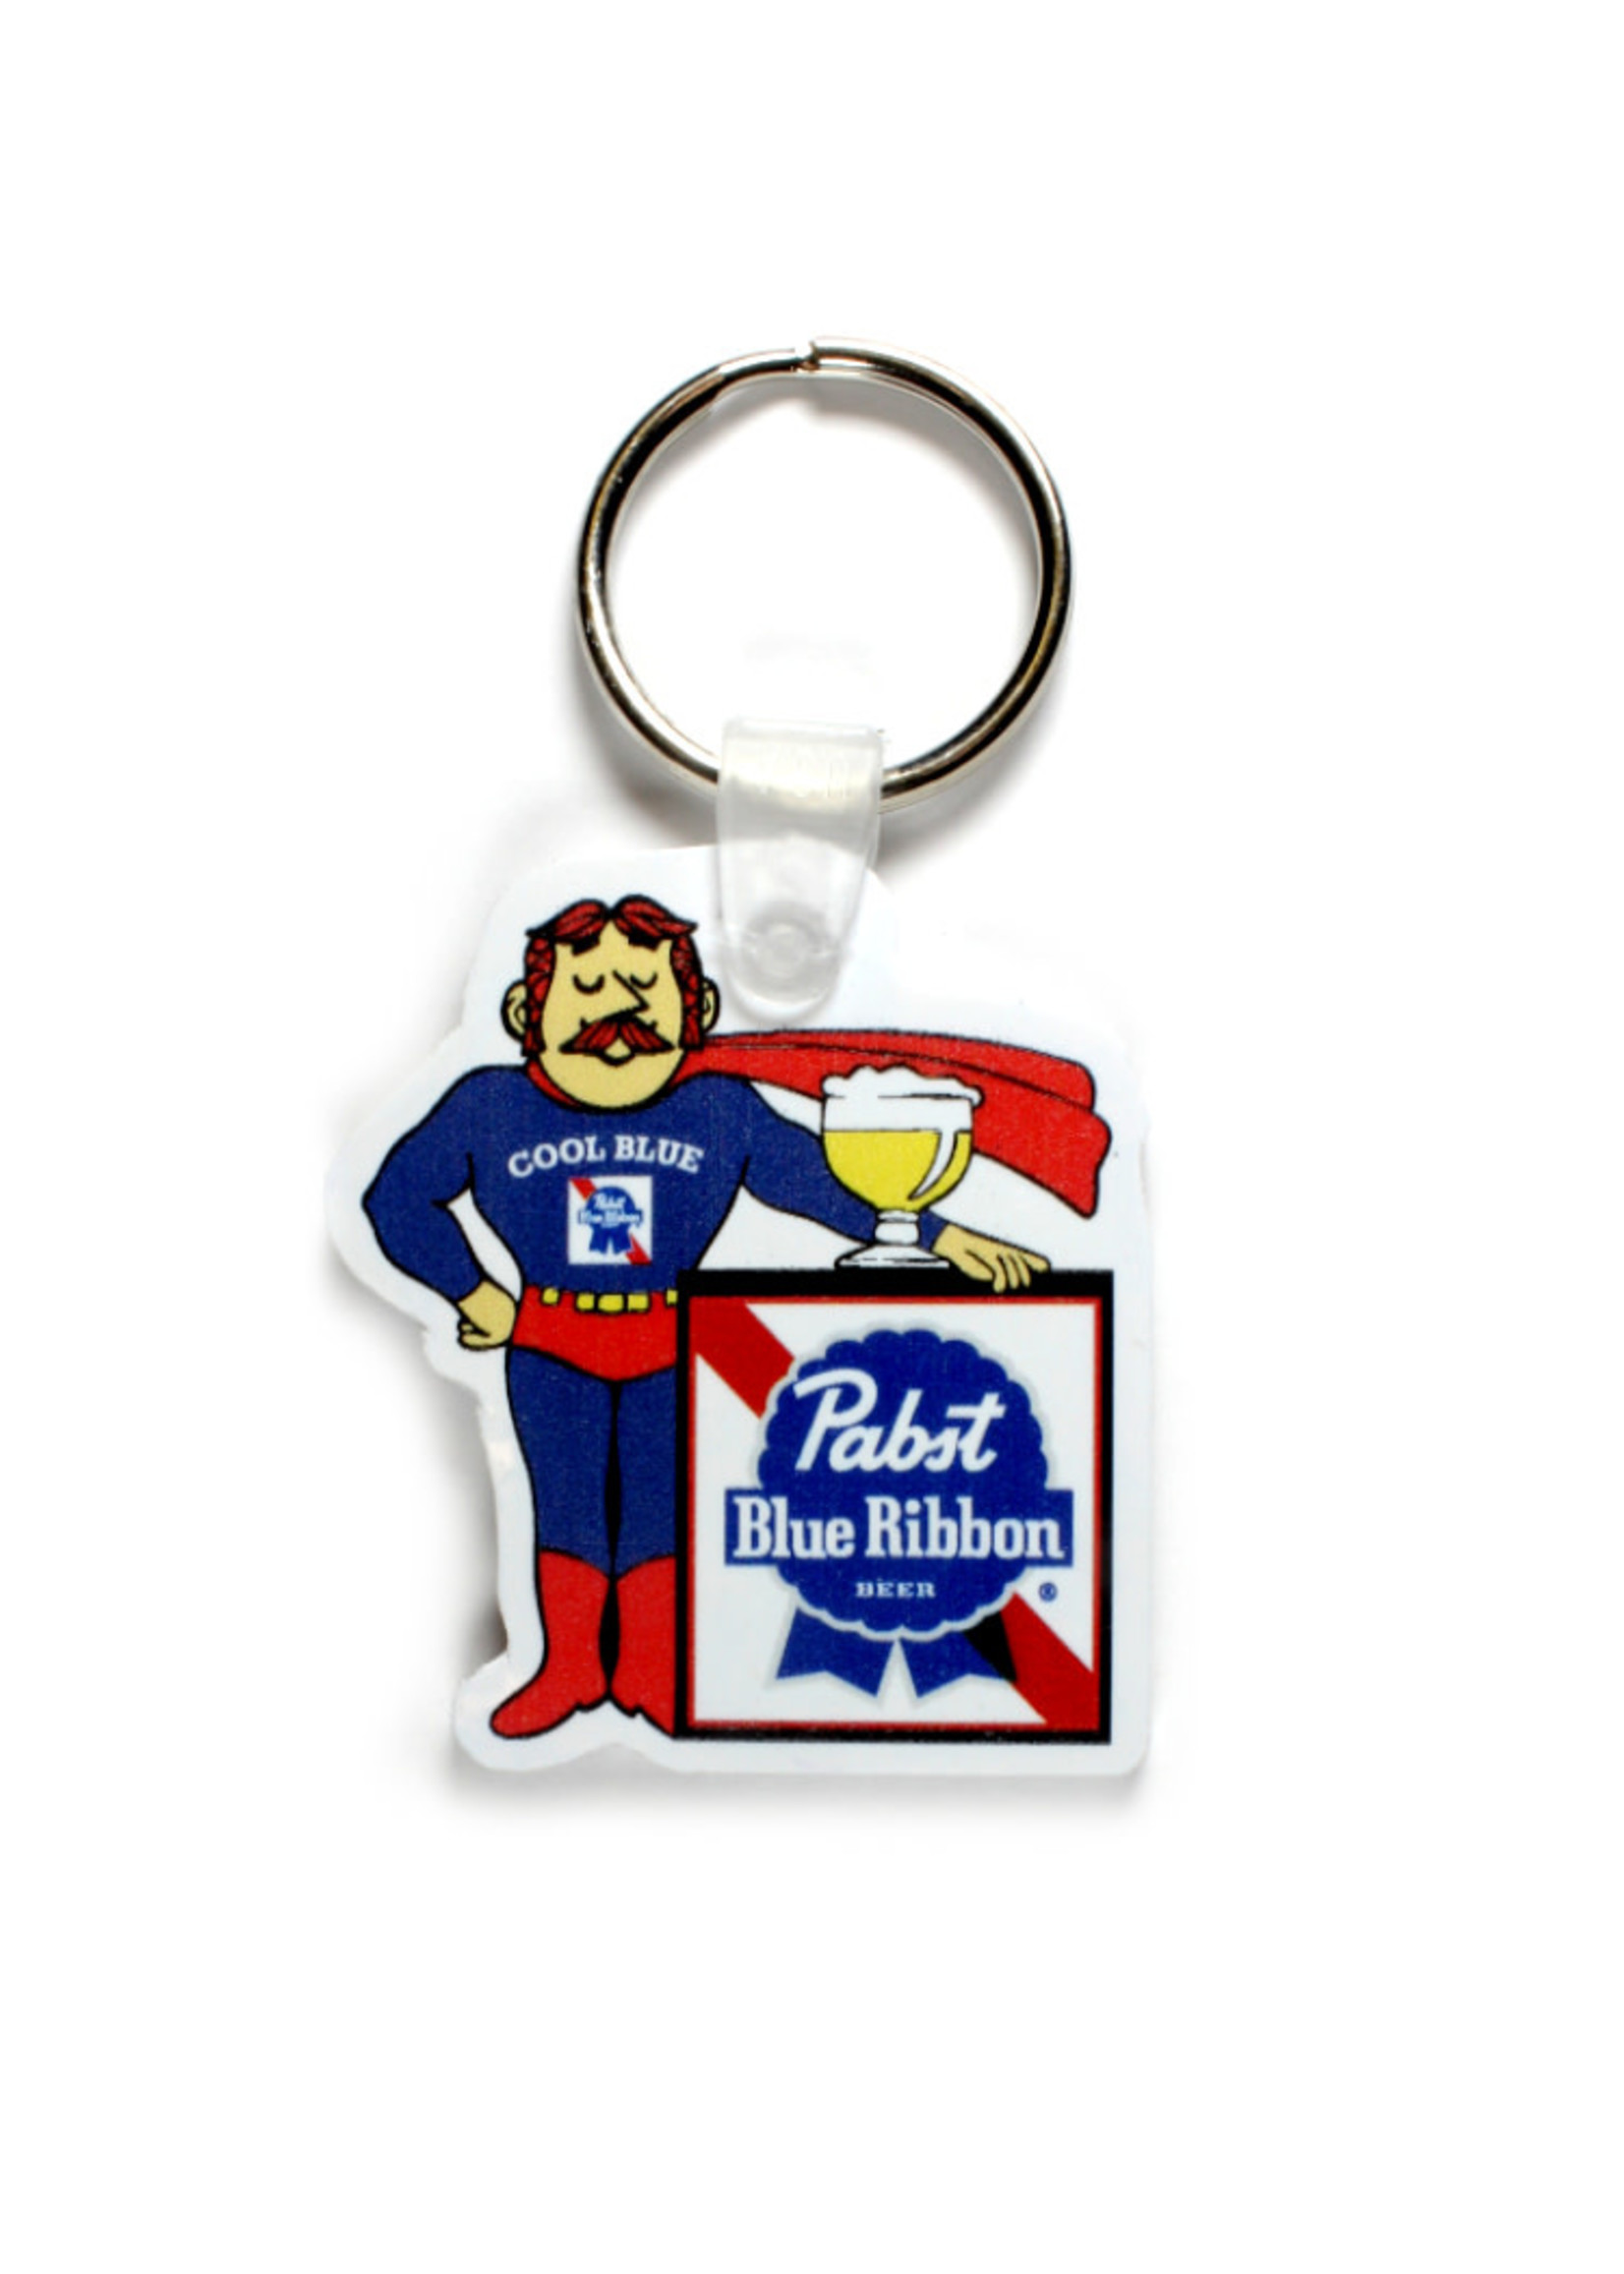 Pabst Pabst Cool Blue Keyring